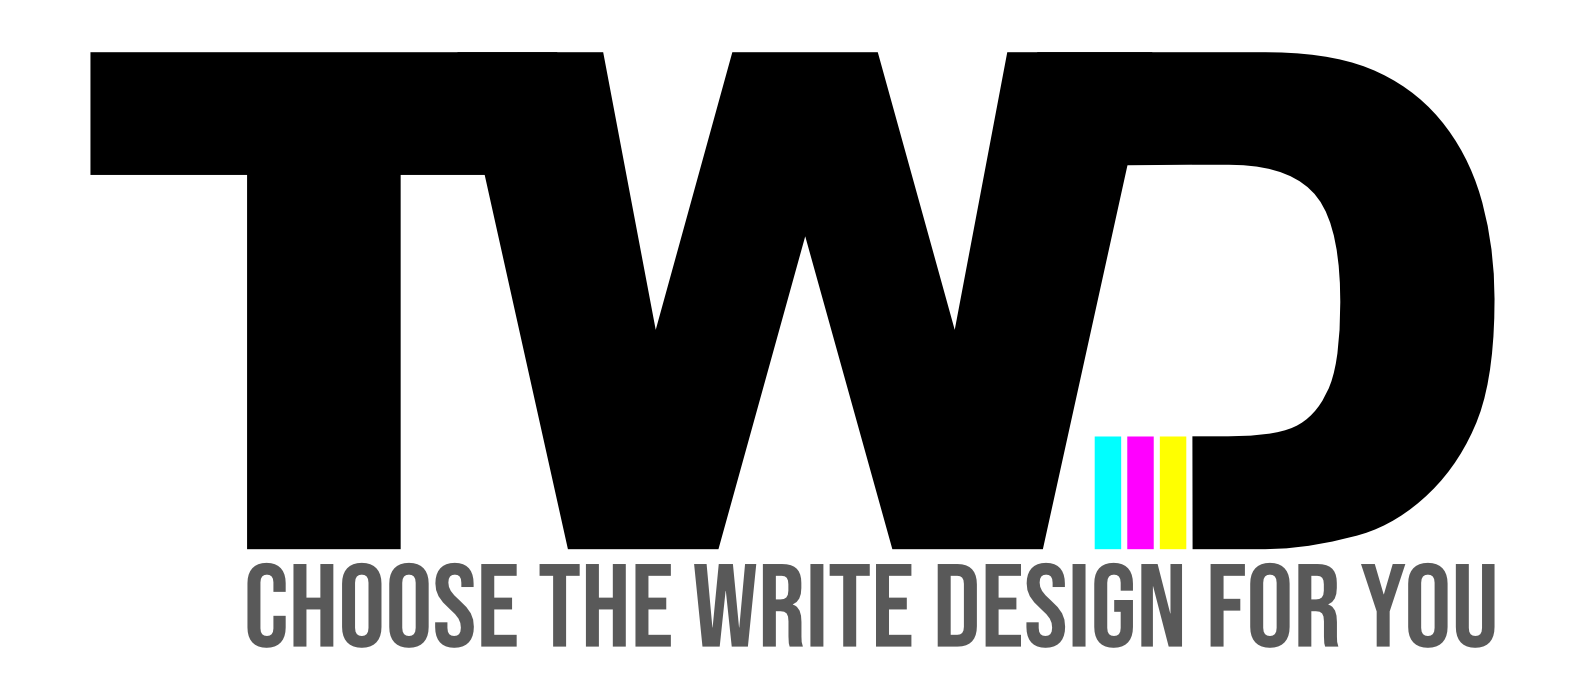 The Write Design